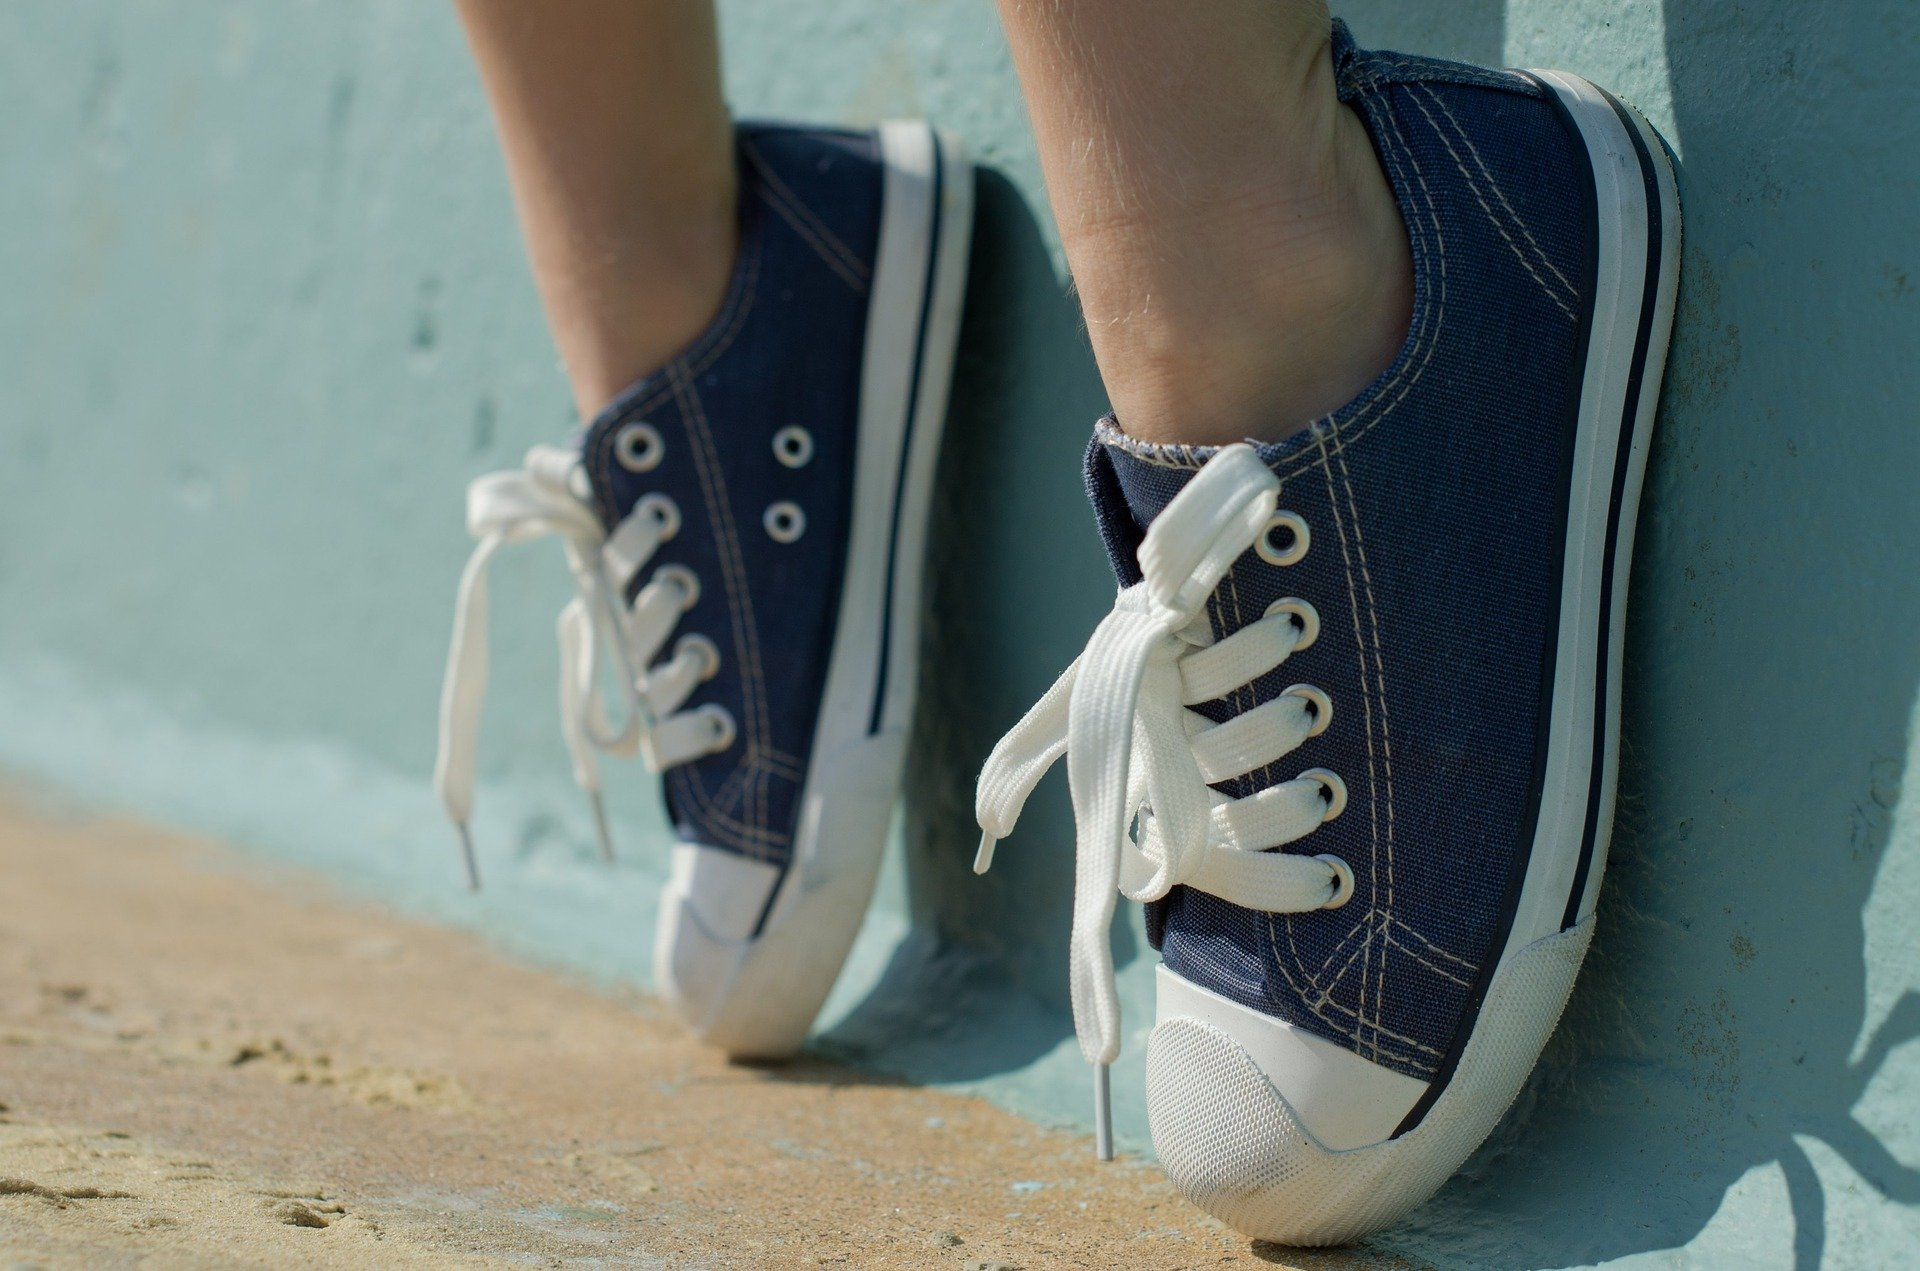 person wearing sneakers rests their feet on blue wall